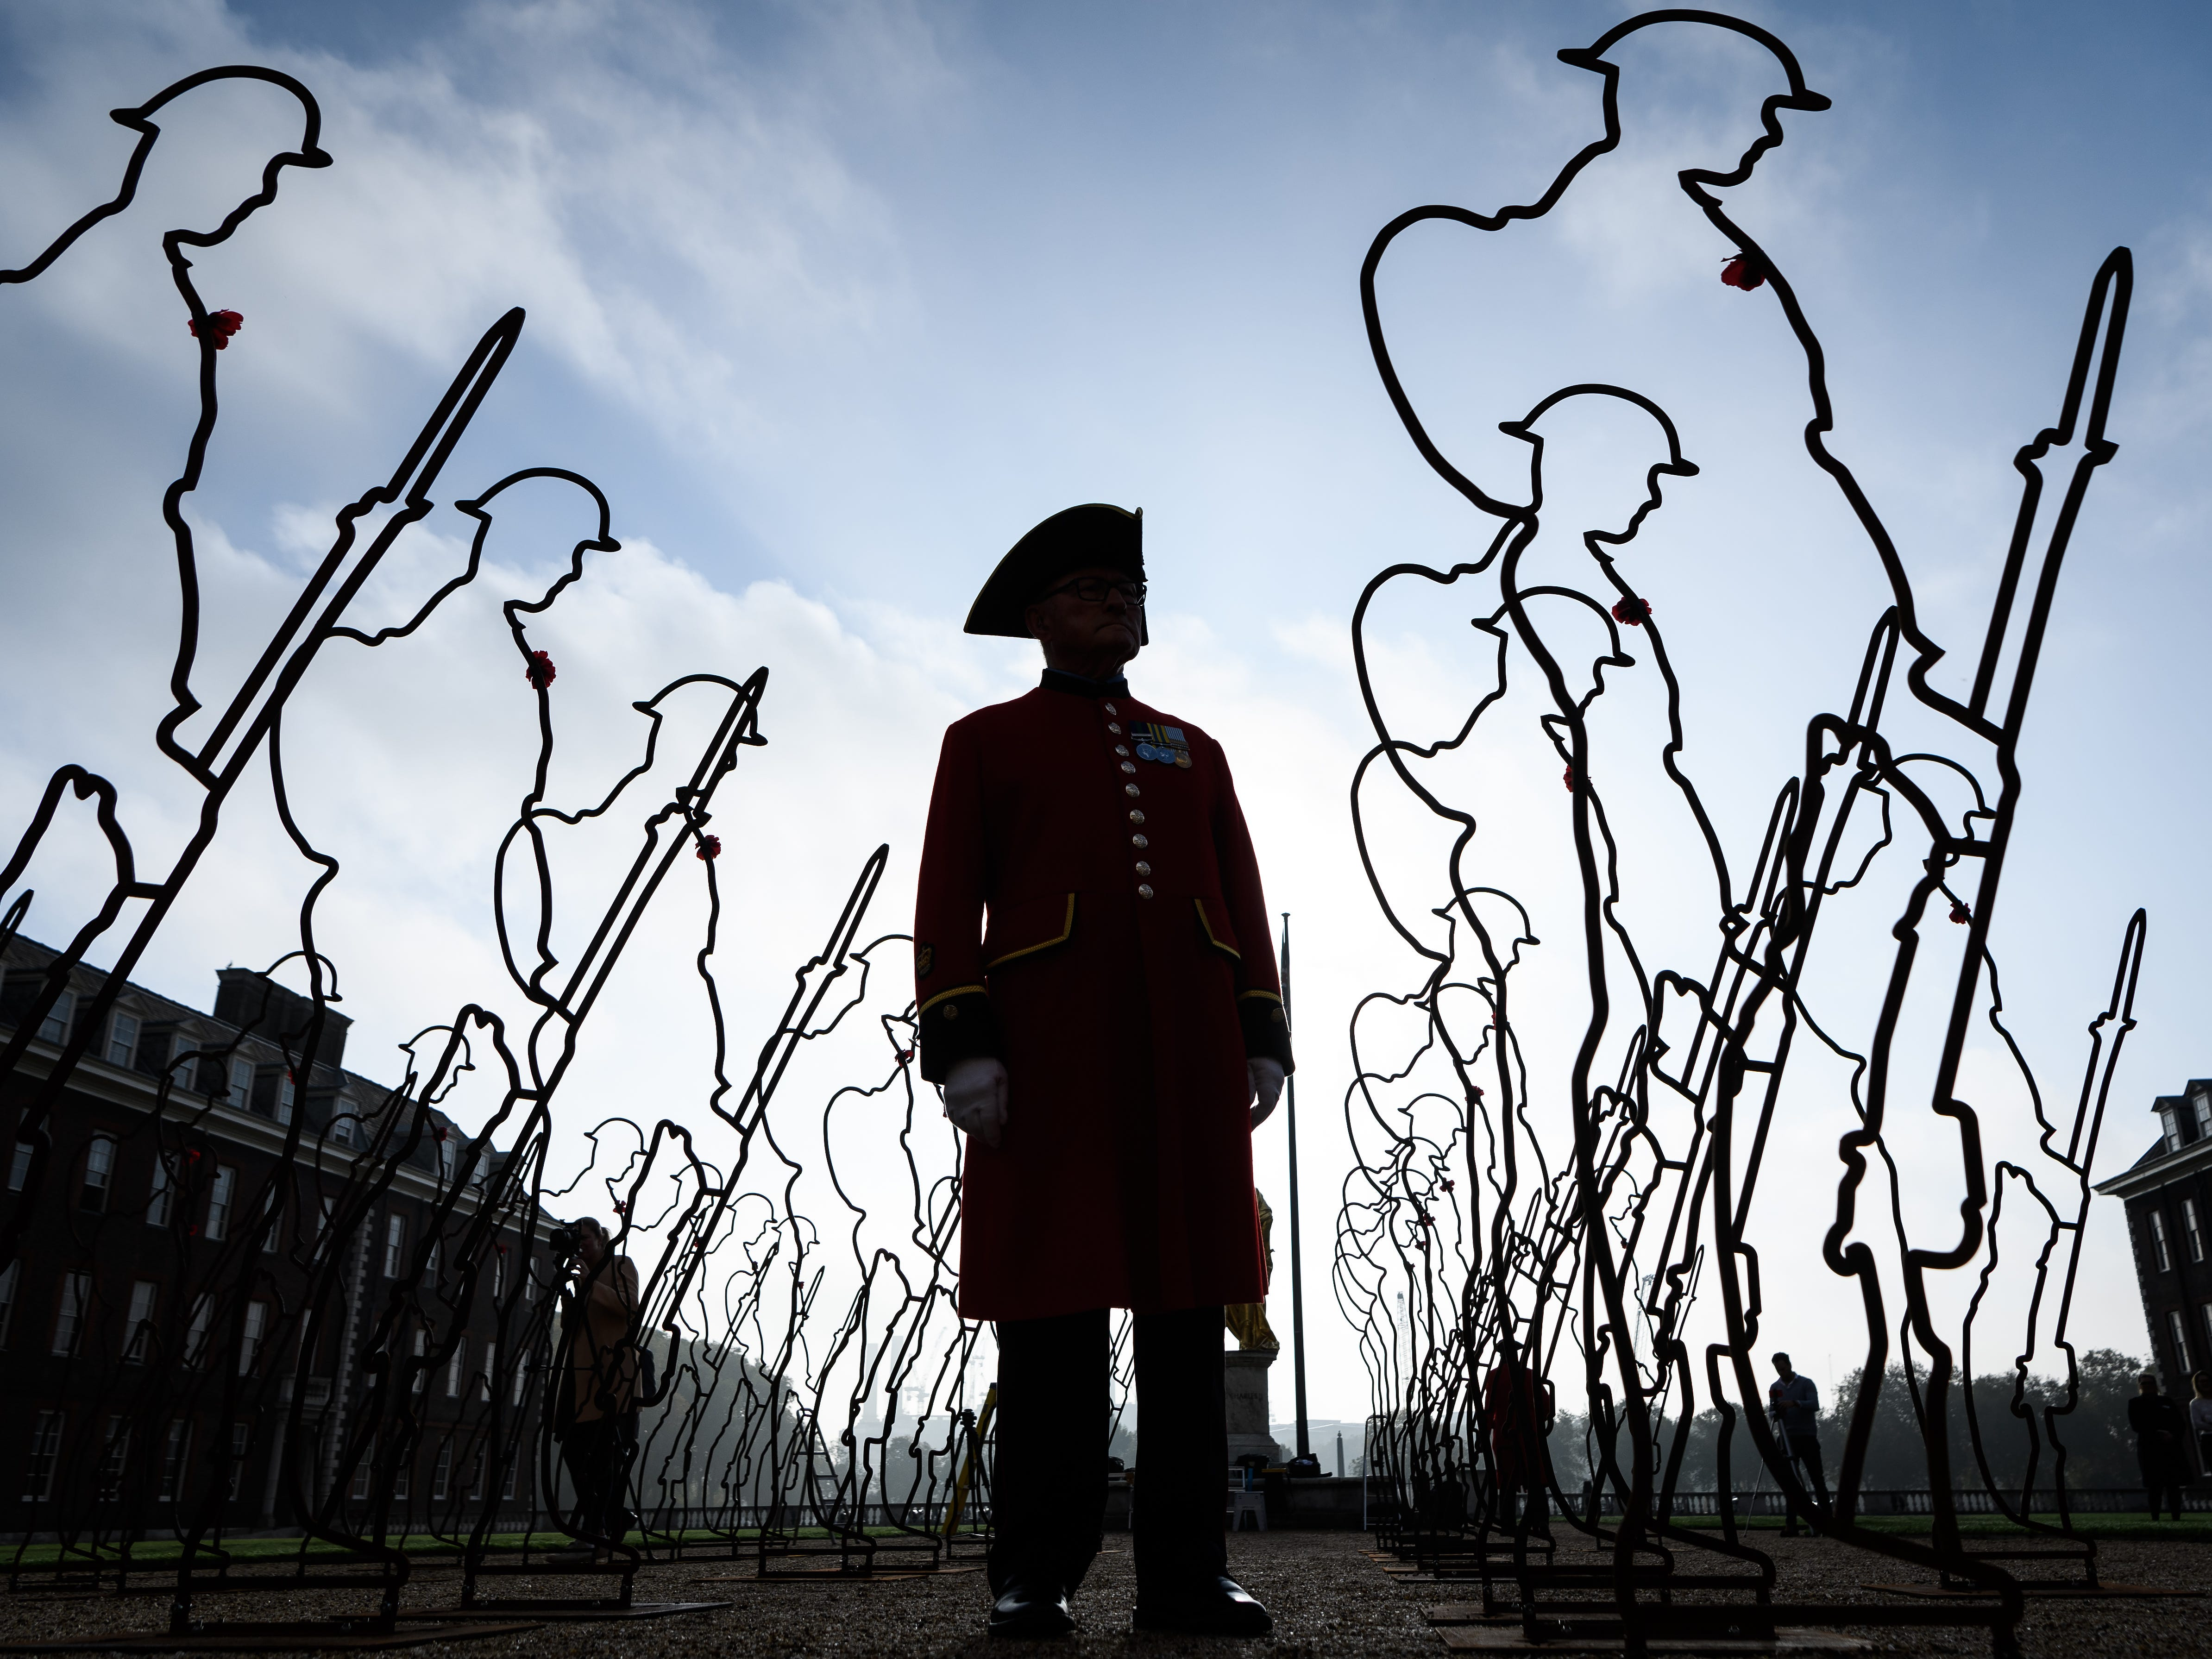 "A former member of the armed forces, known as a Chelsea Pensioner, poses among the ""Tommy"" figures"" before taking part in a photograph to commemorate 100 years since the end of the First World War, at Royal Hospital Chelsea on Oct. 16, 2018, in London."